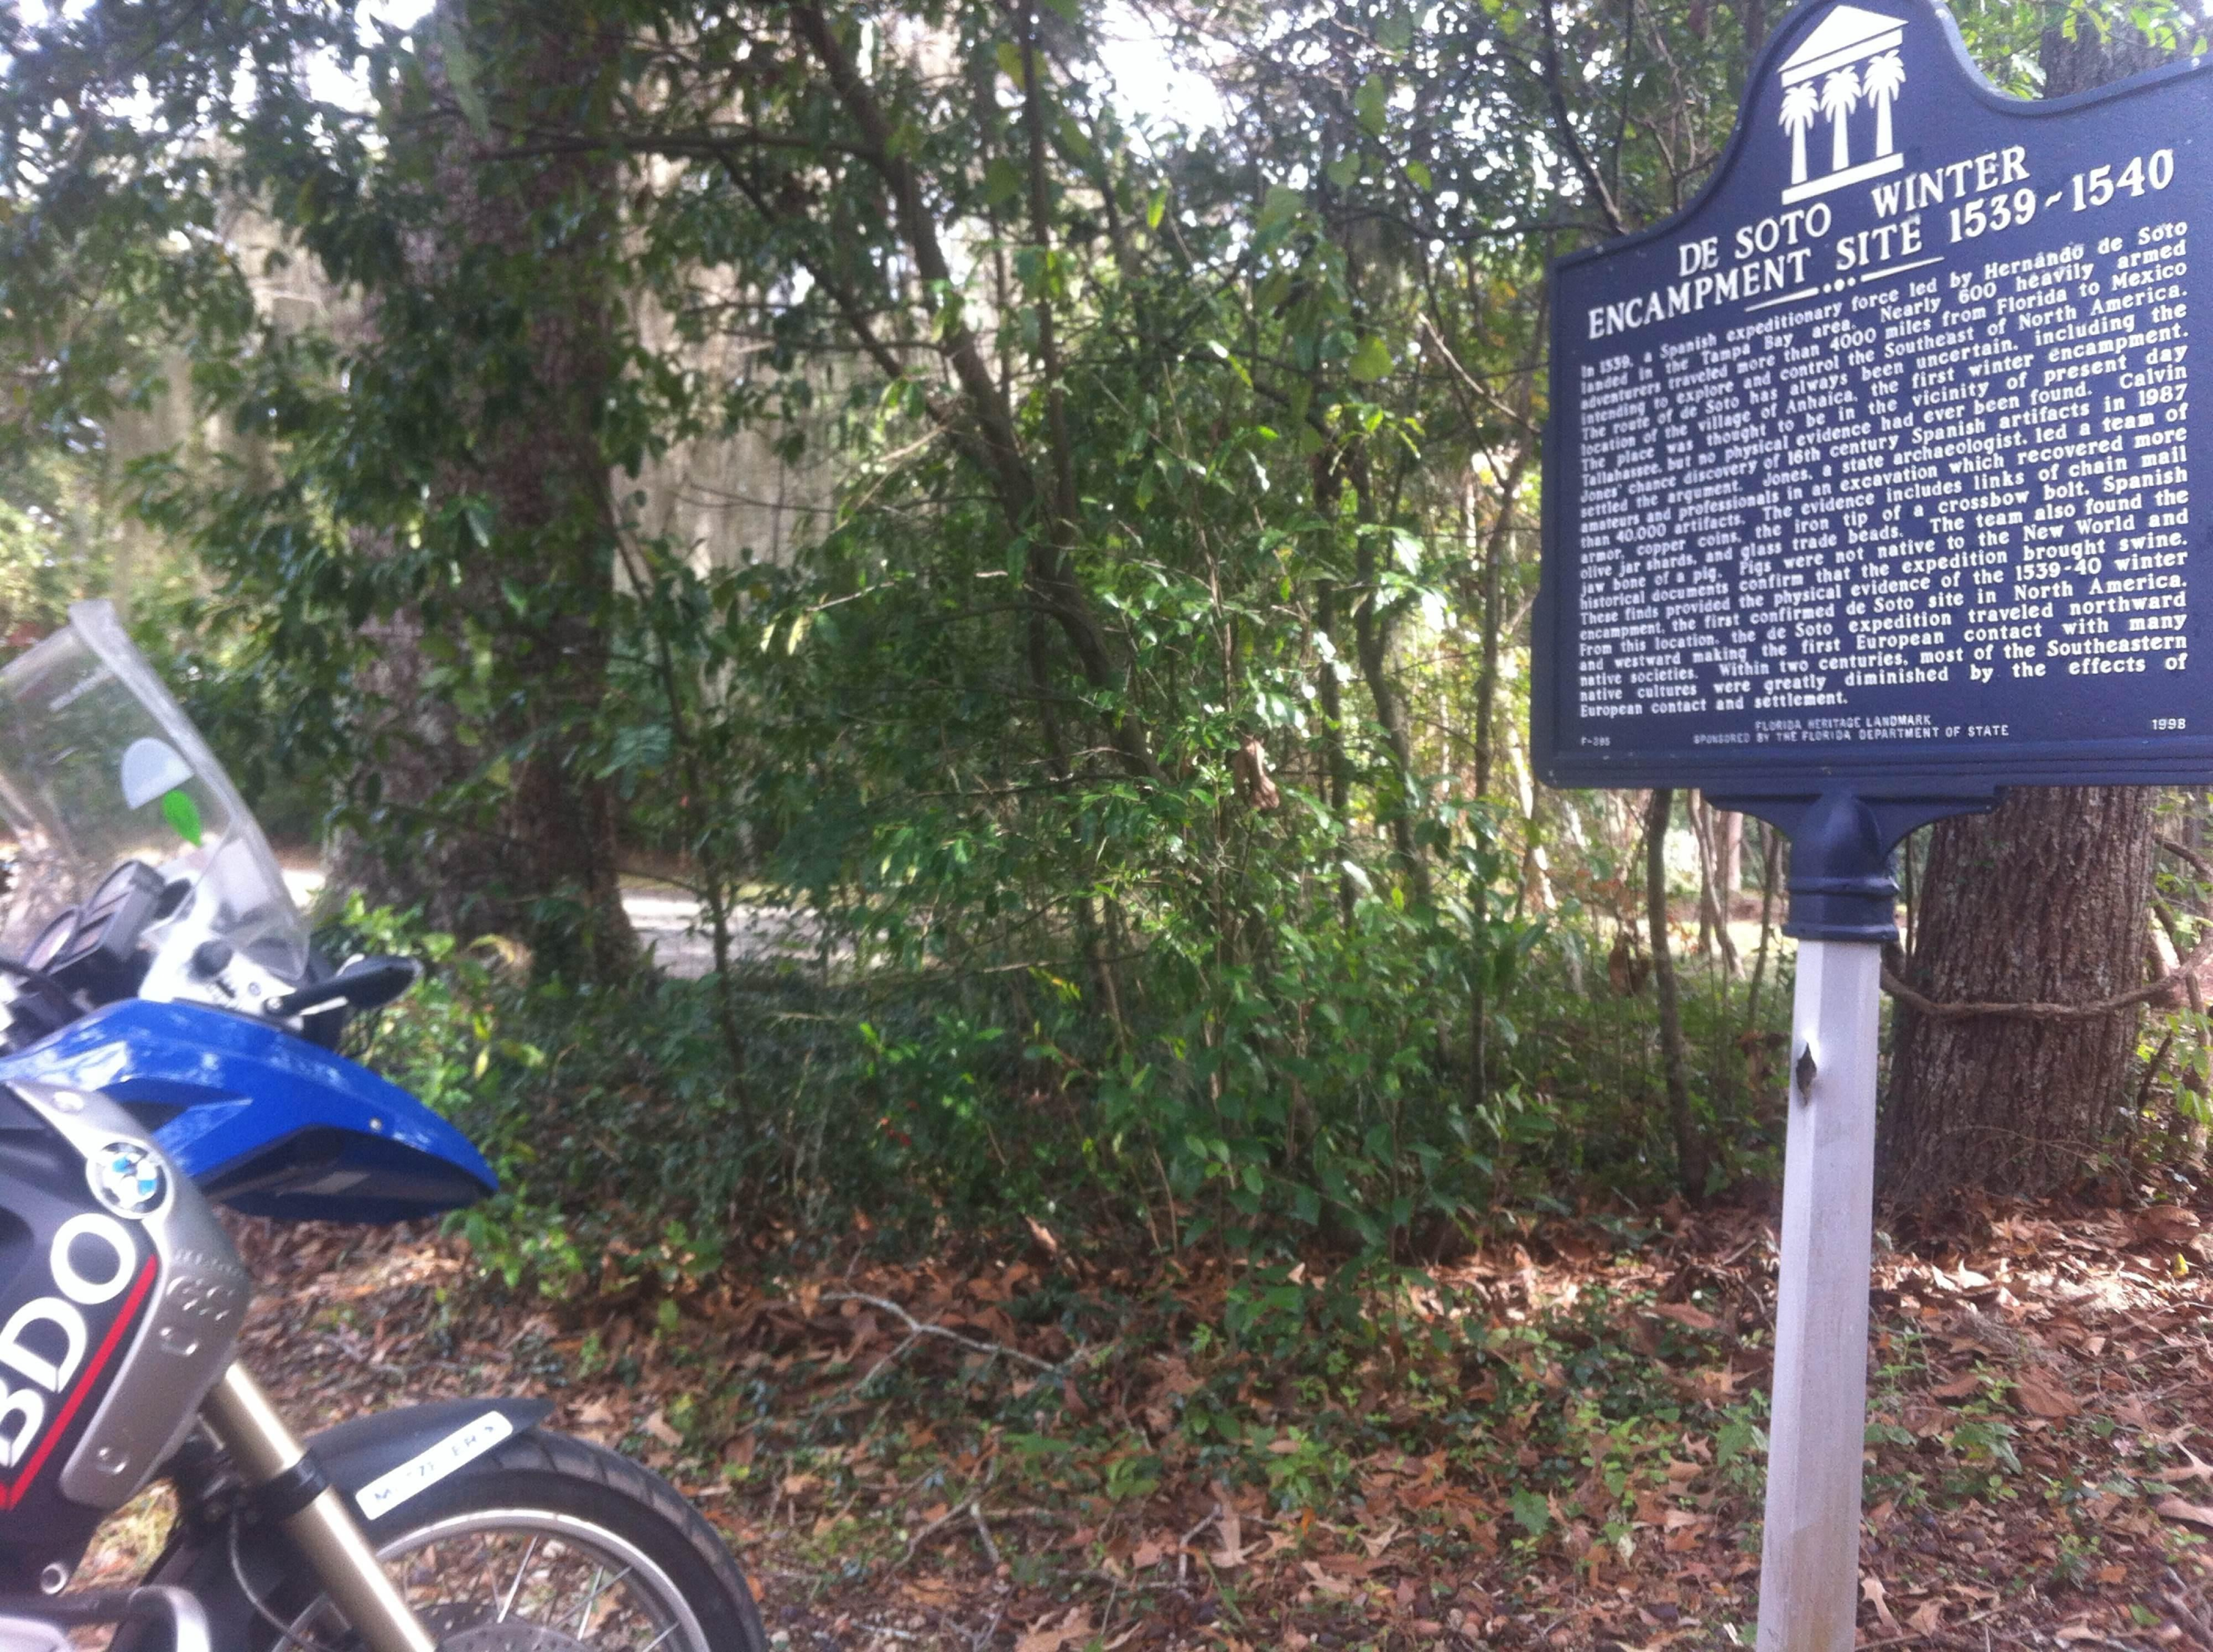 Bicycle in Tallahassee